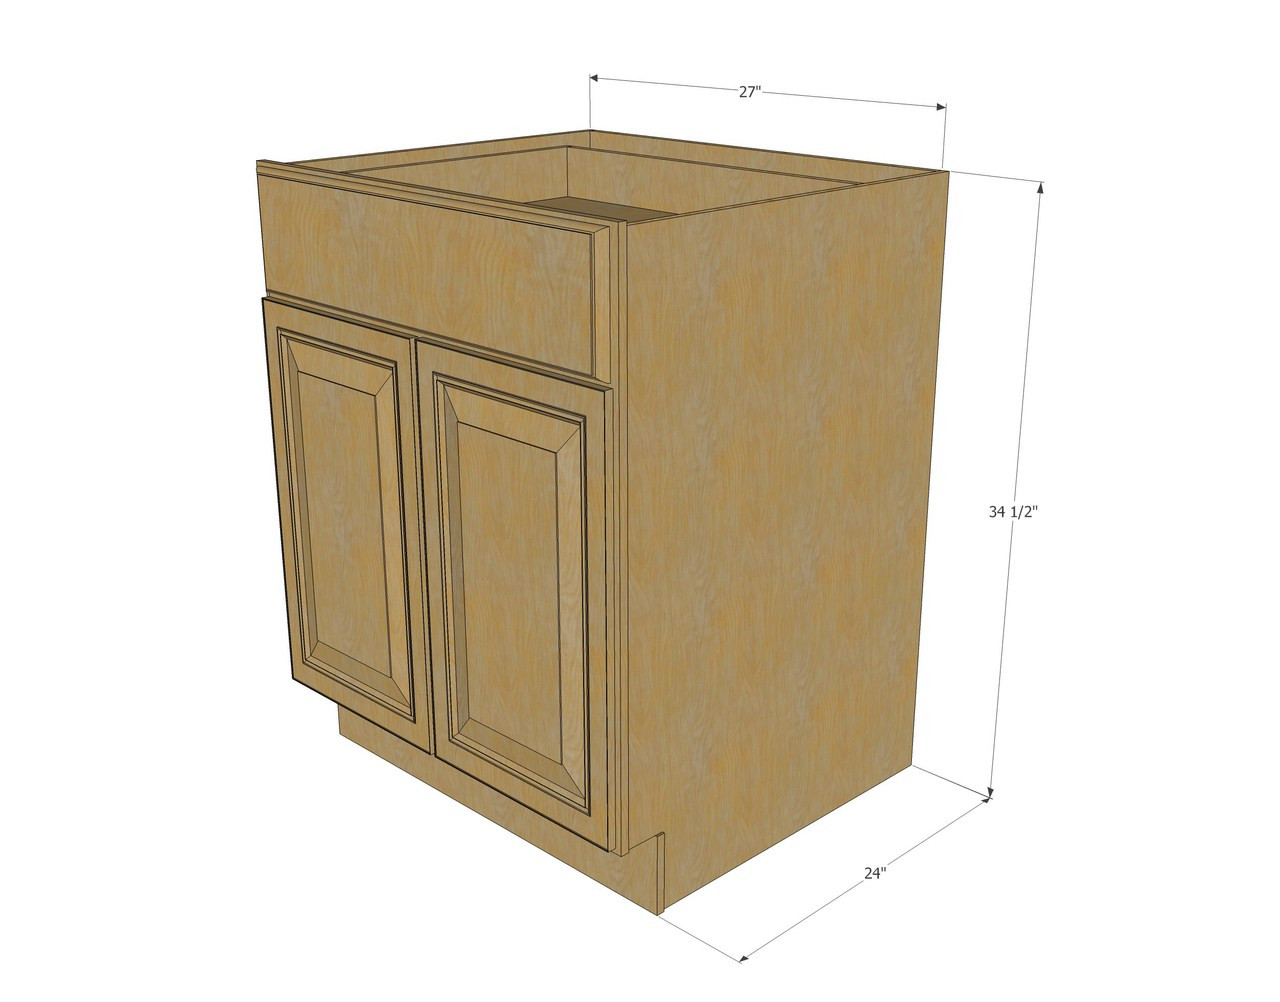 18 inch deep base cabinets 27 inch base cabinet 3d models for 18 inch deep base kitchen cabinets